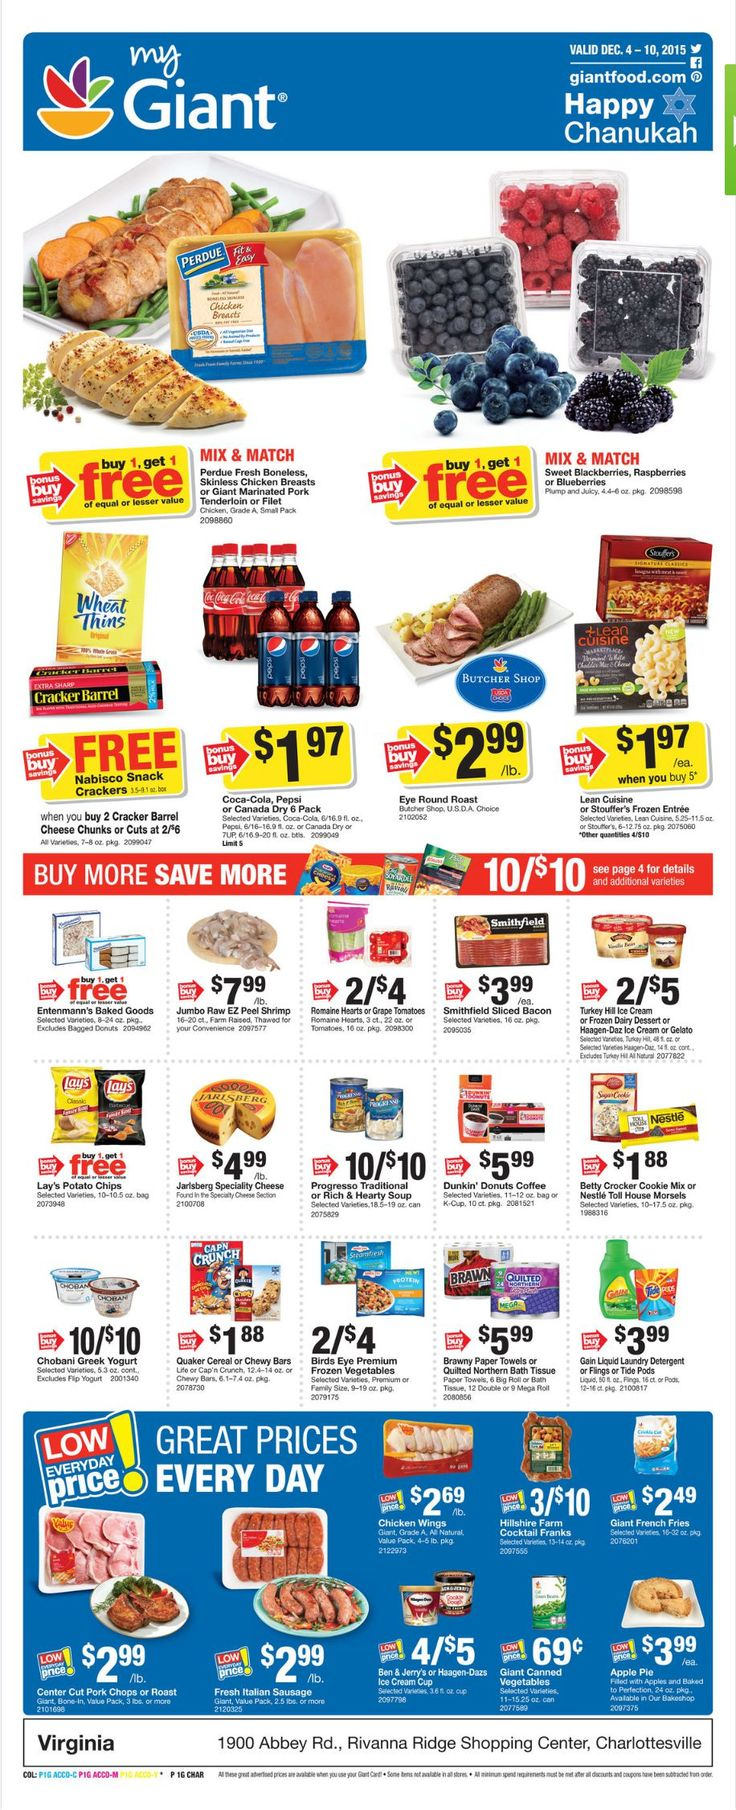 Giant Food Weekly Ad December 4 - 10, 2015 - http://www.olcatalog.com/grocery/giant-food-weekly-ad.html